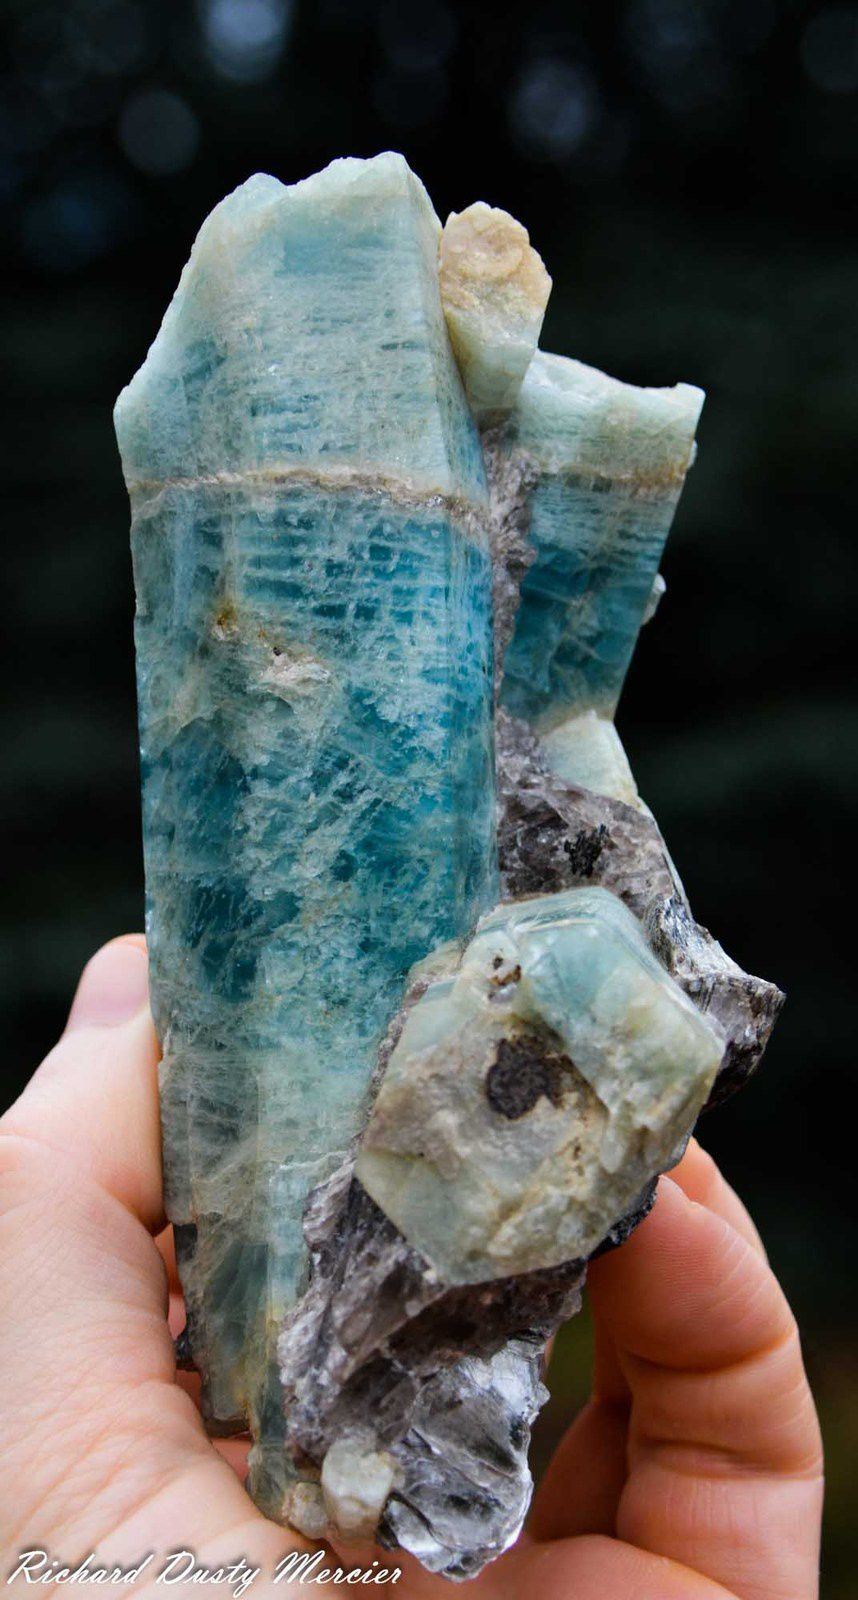 Aquamarine with Muscovite from Fiker Mine, Nagar Valley, Gilgit District, Gilgit-Baltistan, Northern Areas of Pakistan